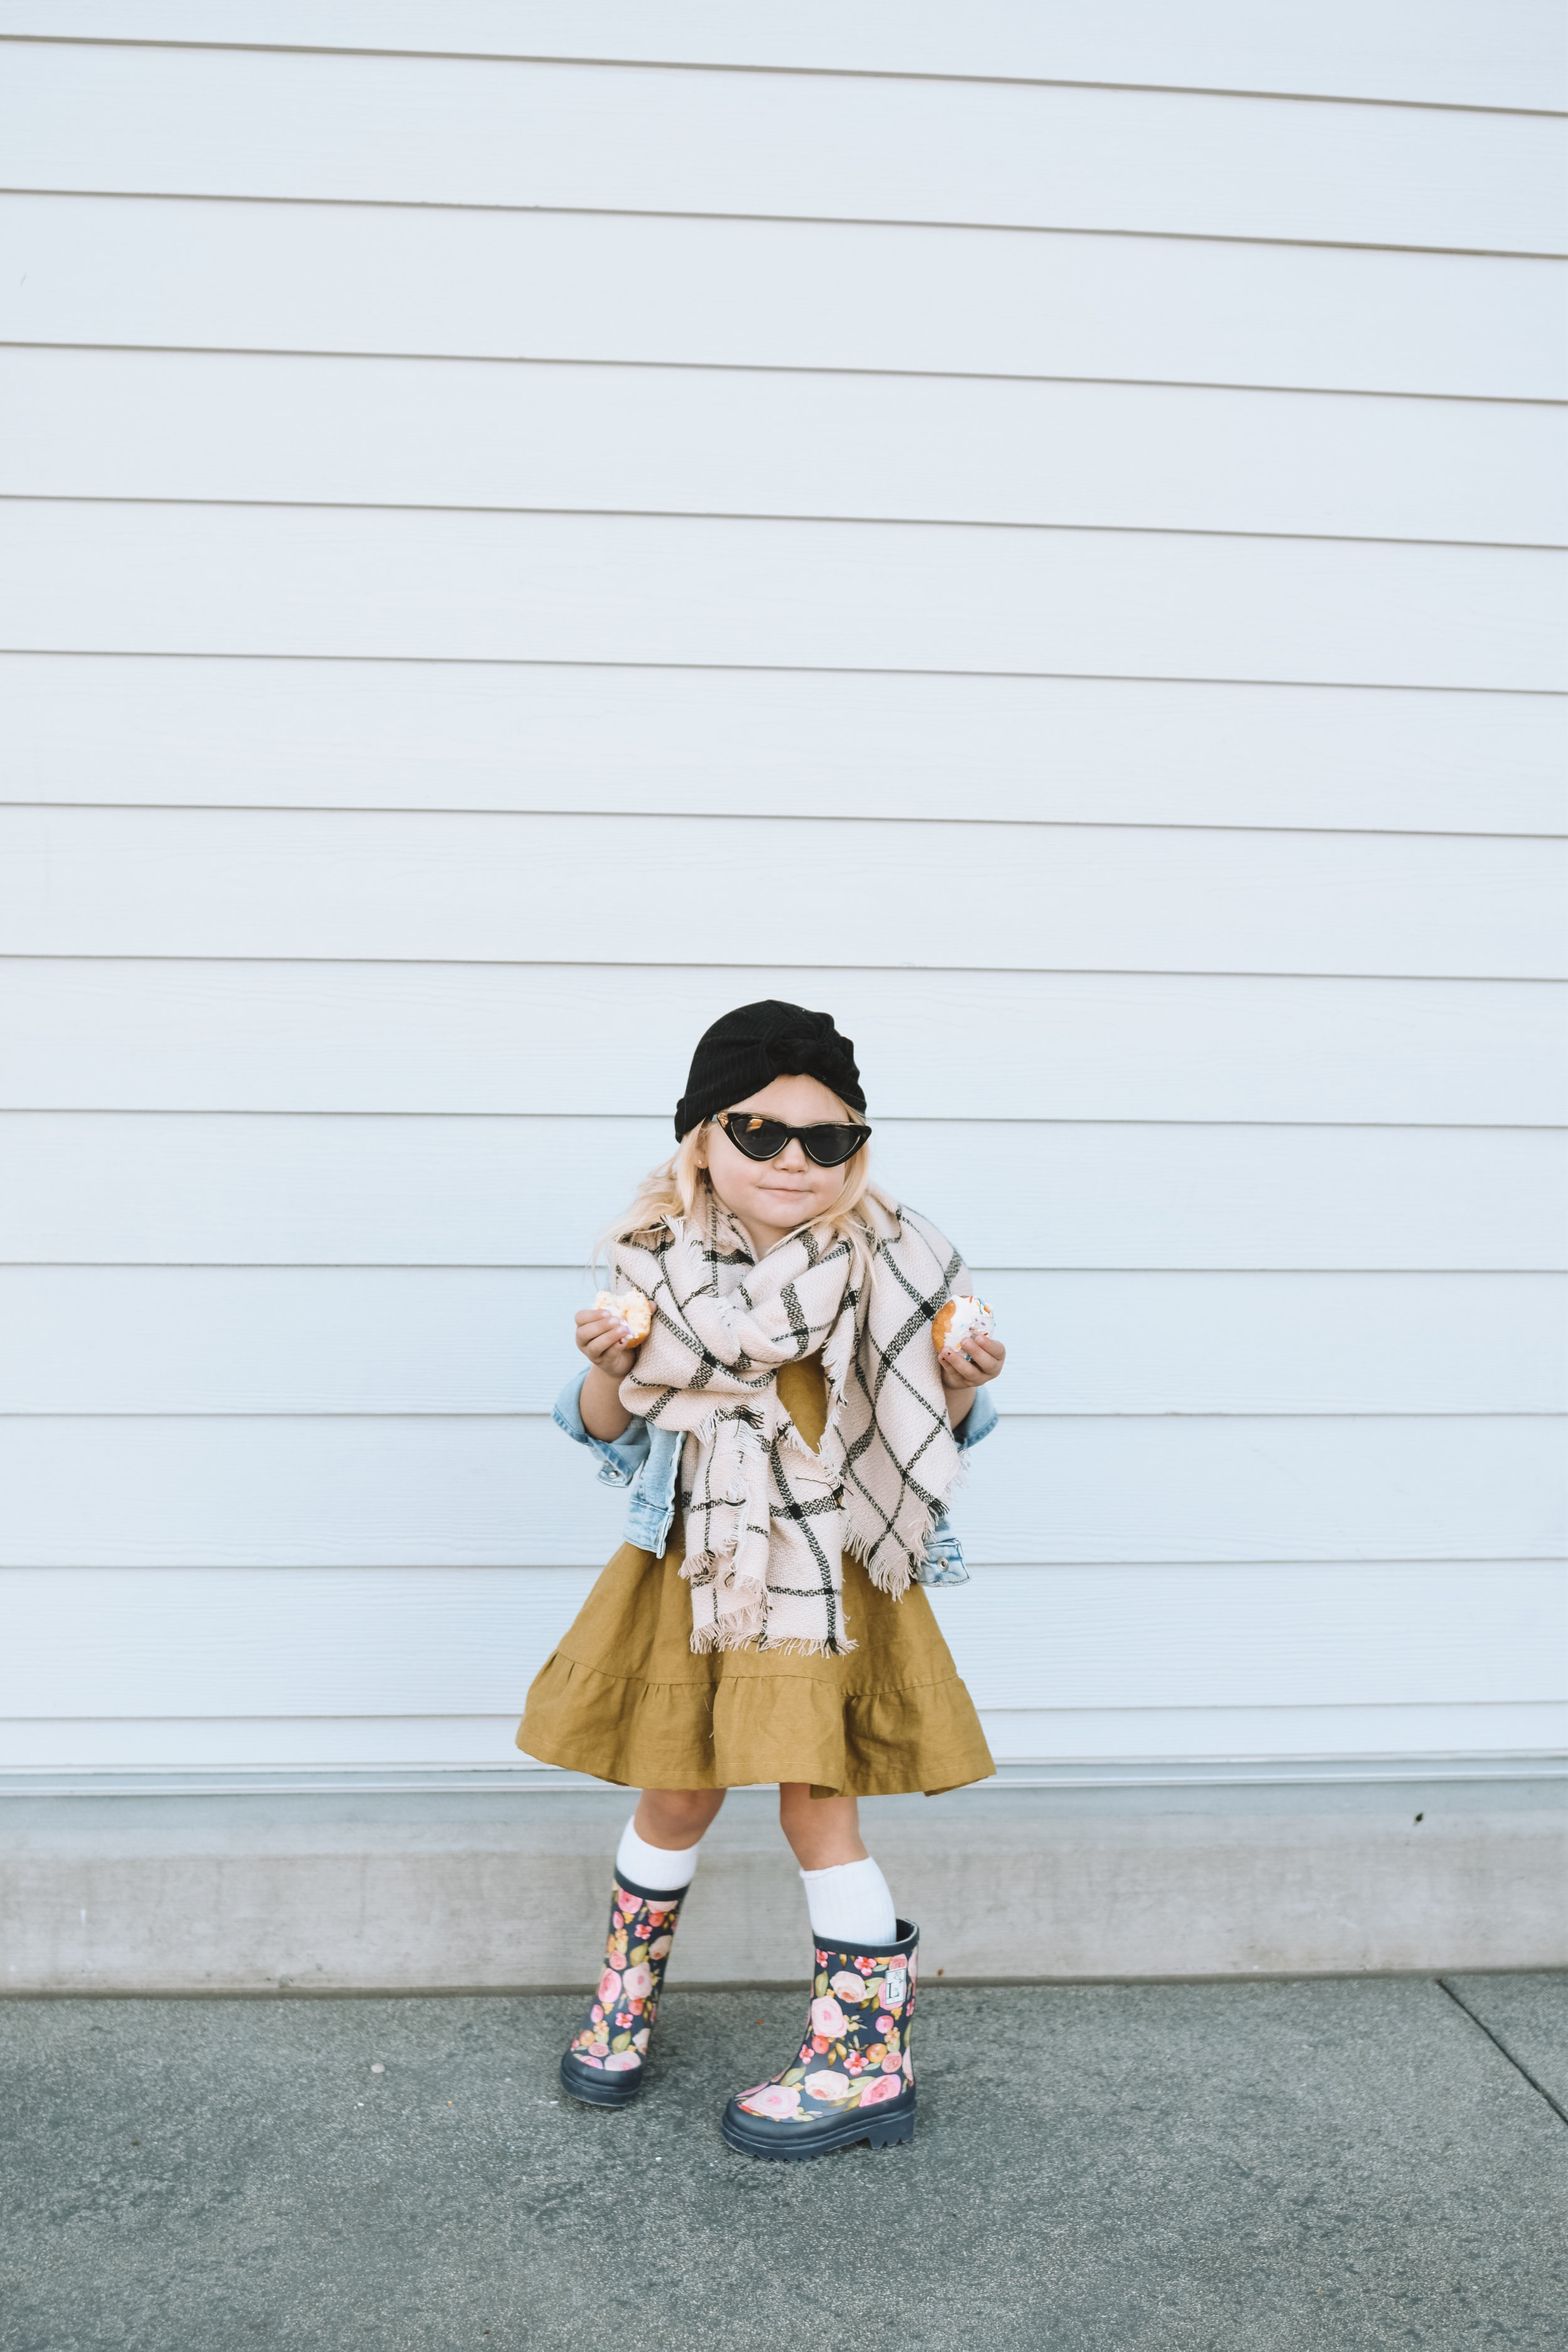 Cute Kids CLothes Fashion Outfits - The Overwhelmed Mommy Blogger